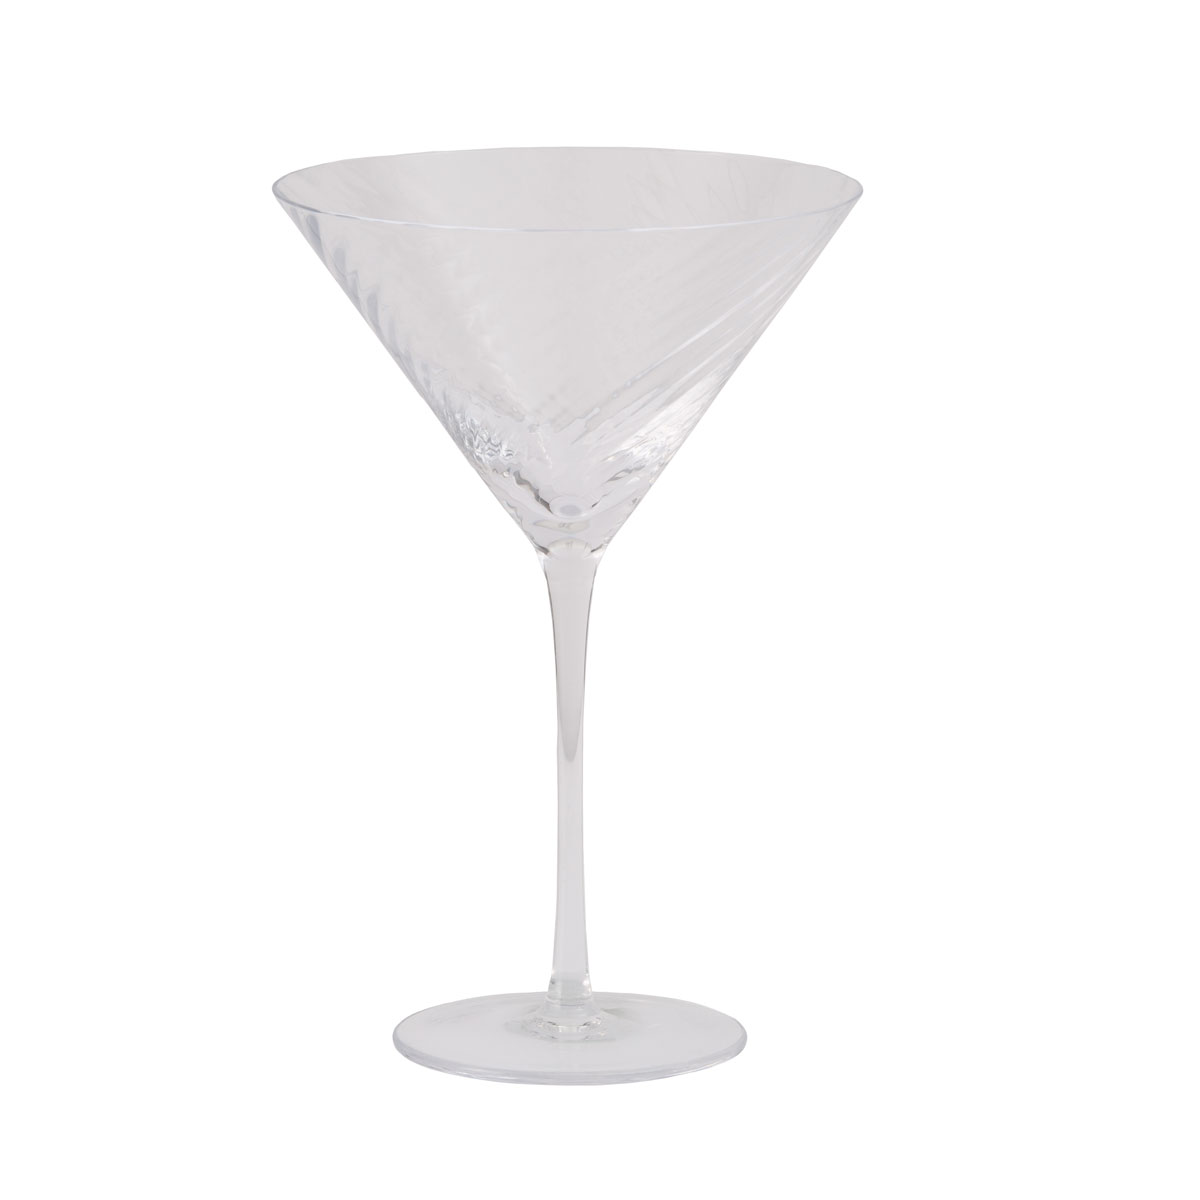 Michael Aram Twist Diamond Martini Glass, Single